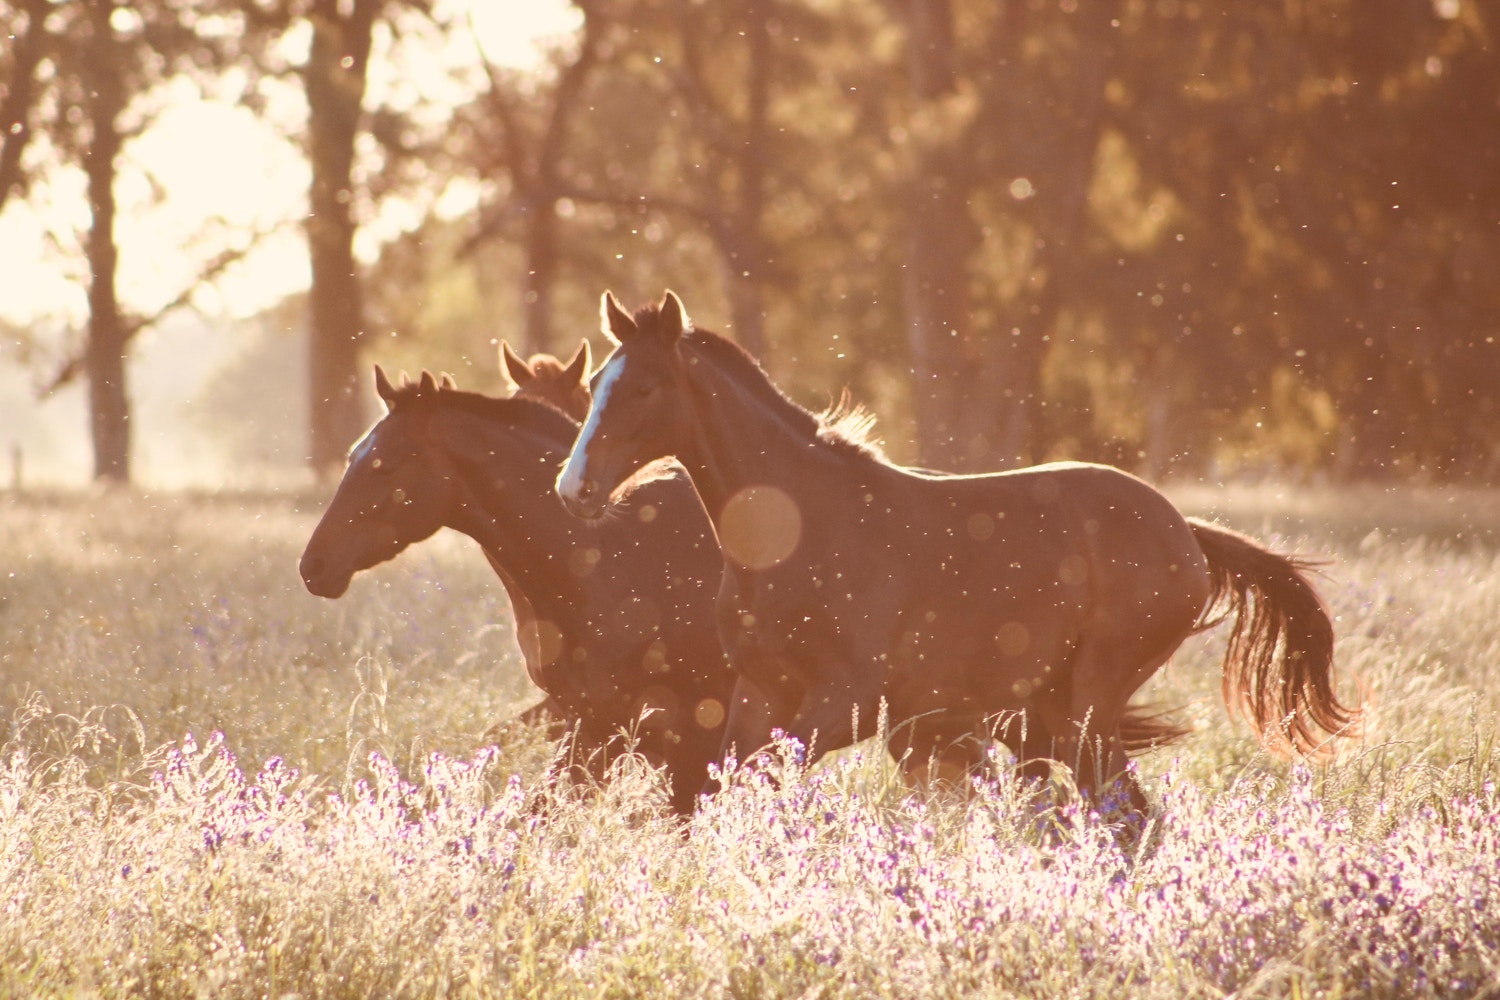 Sustenance Herbs: A Natural Treatment for Equine Parasites